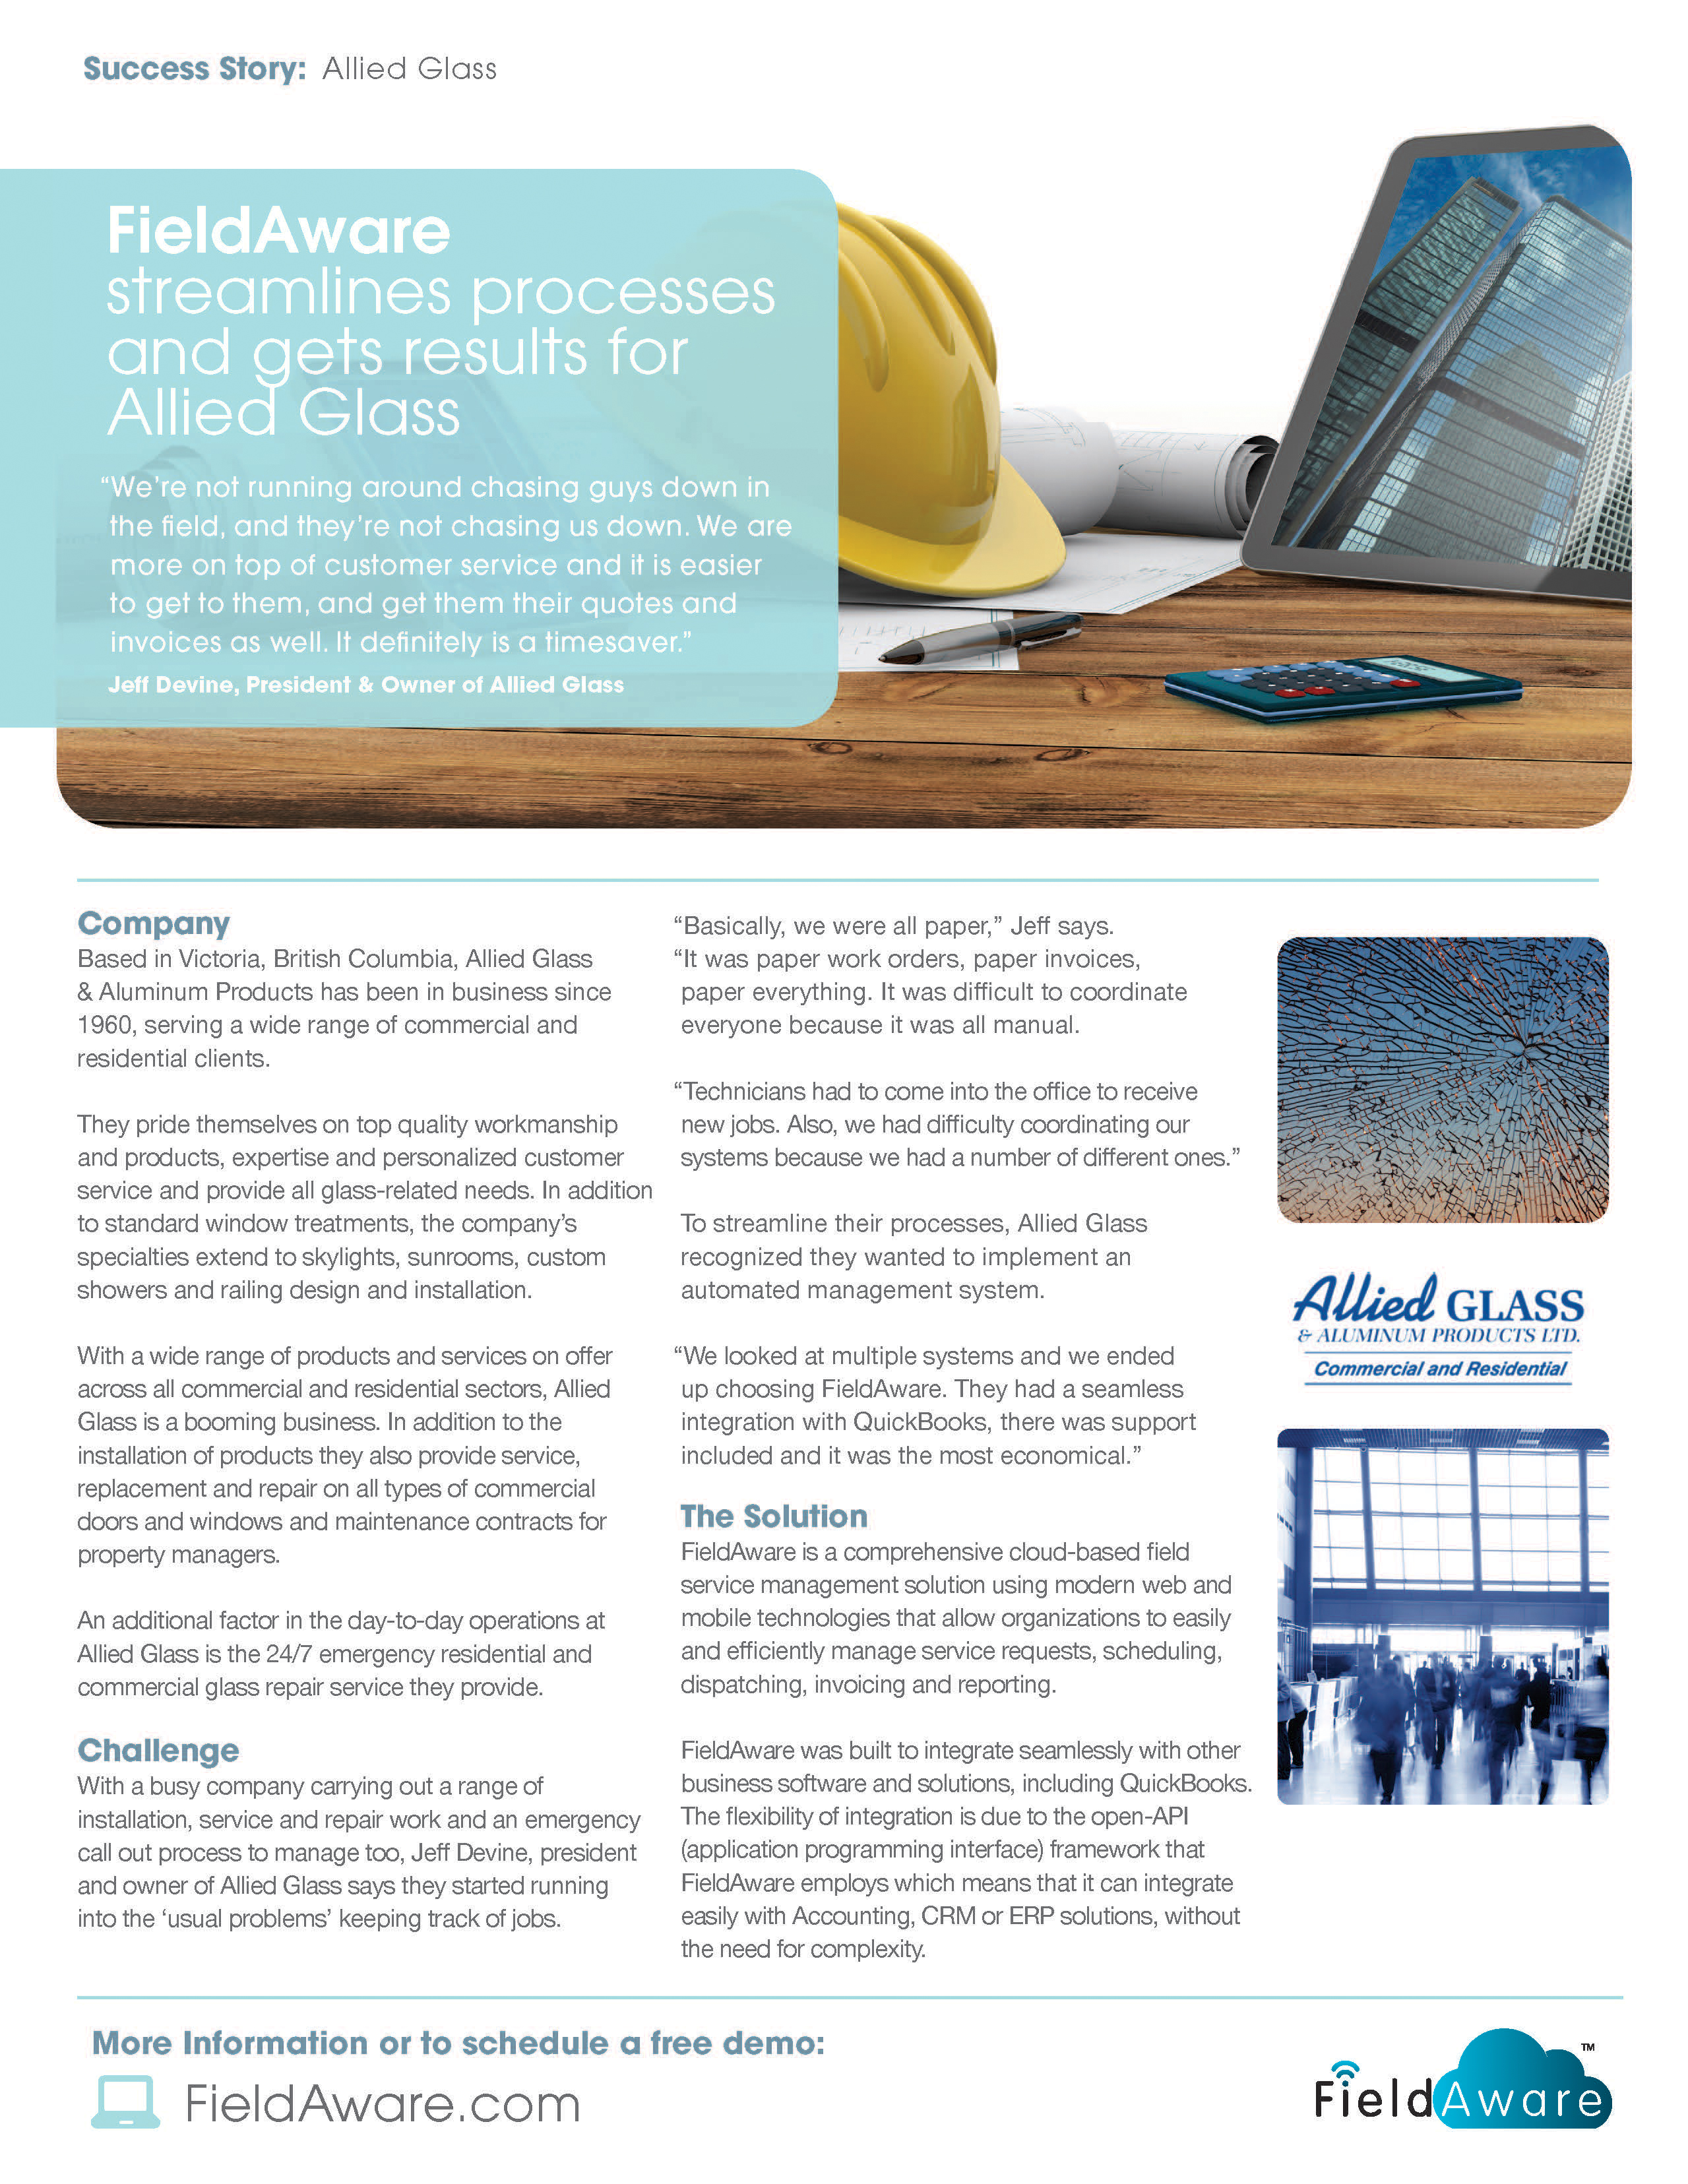 Allied glass case study